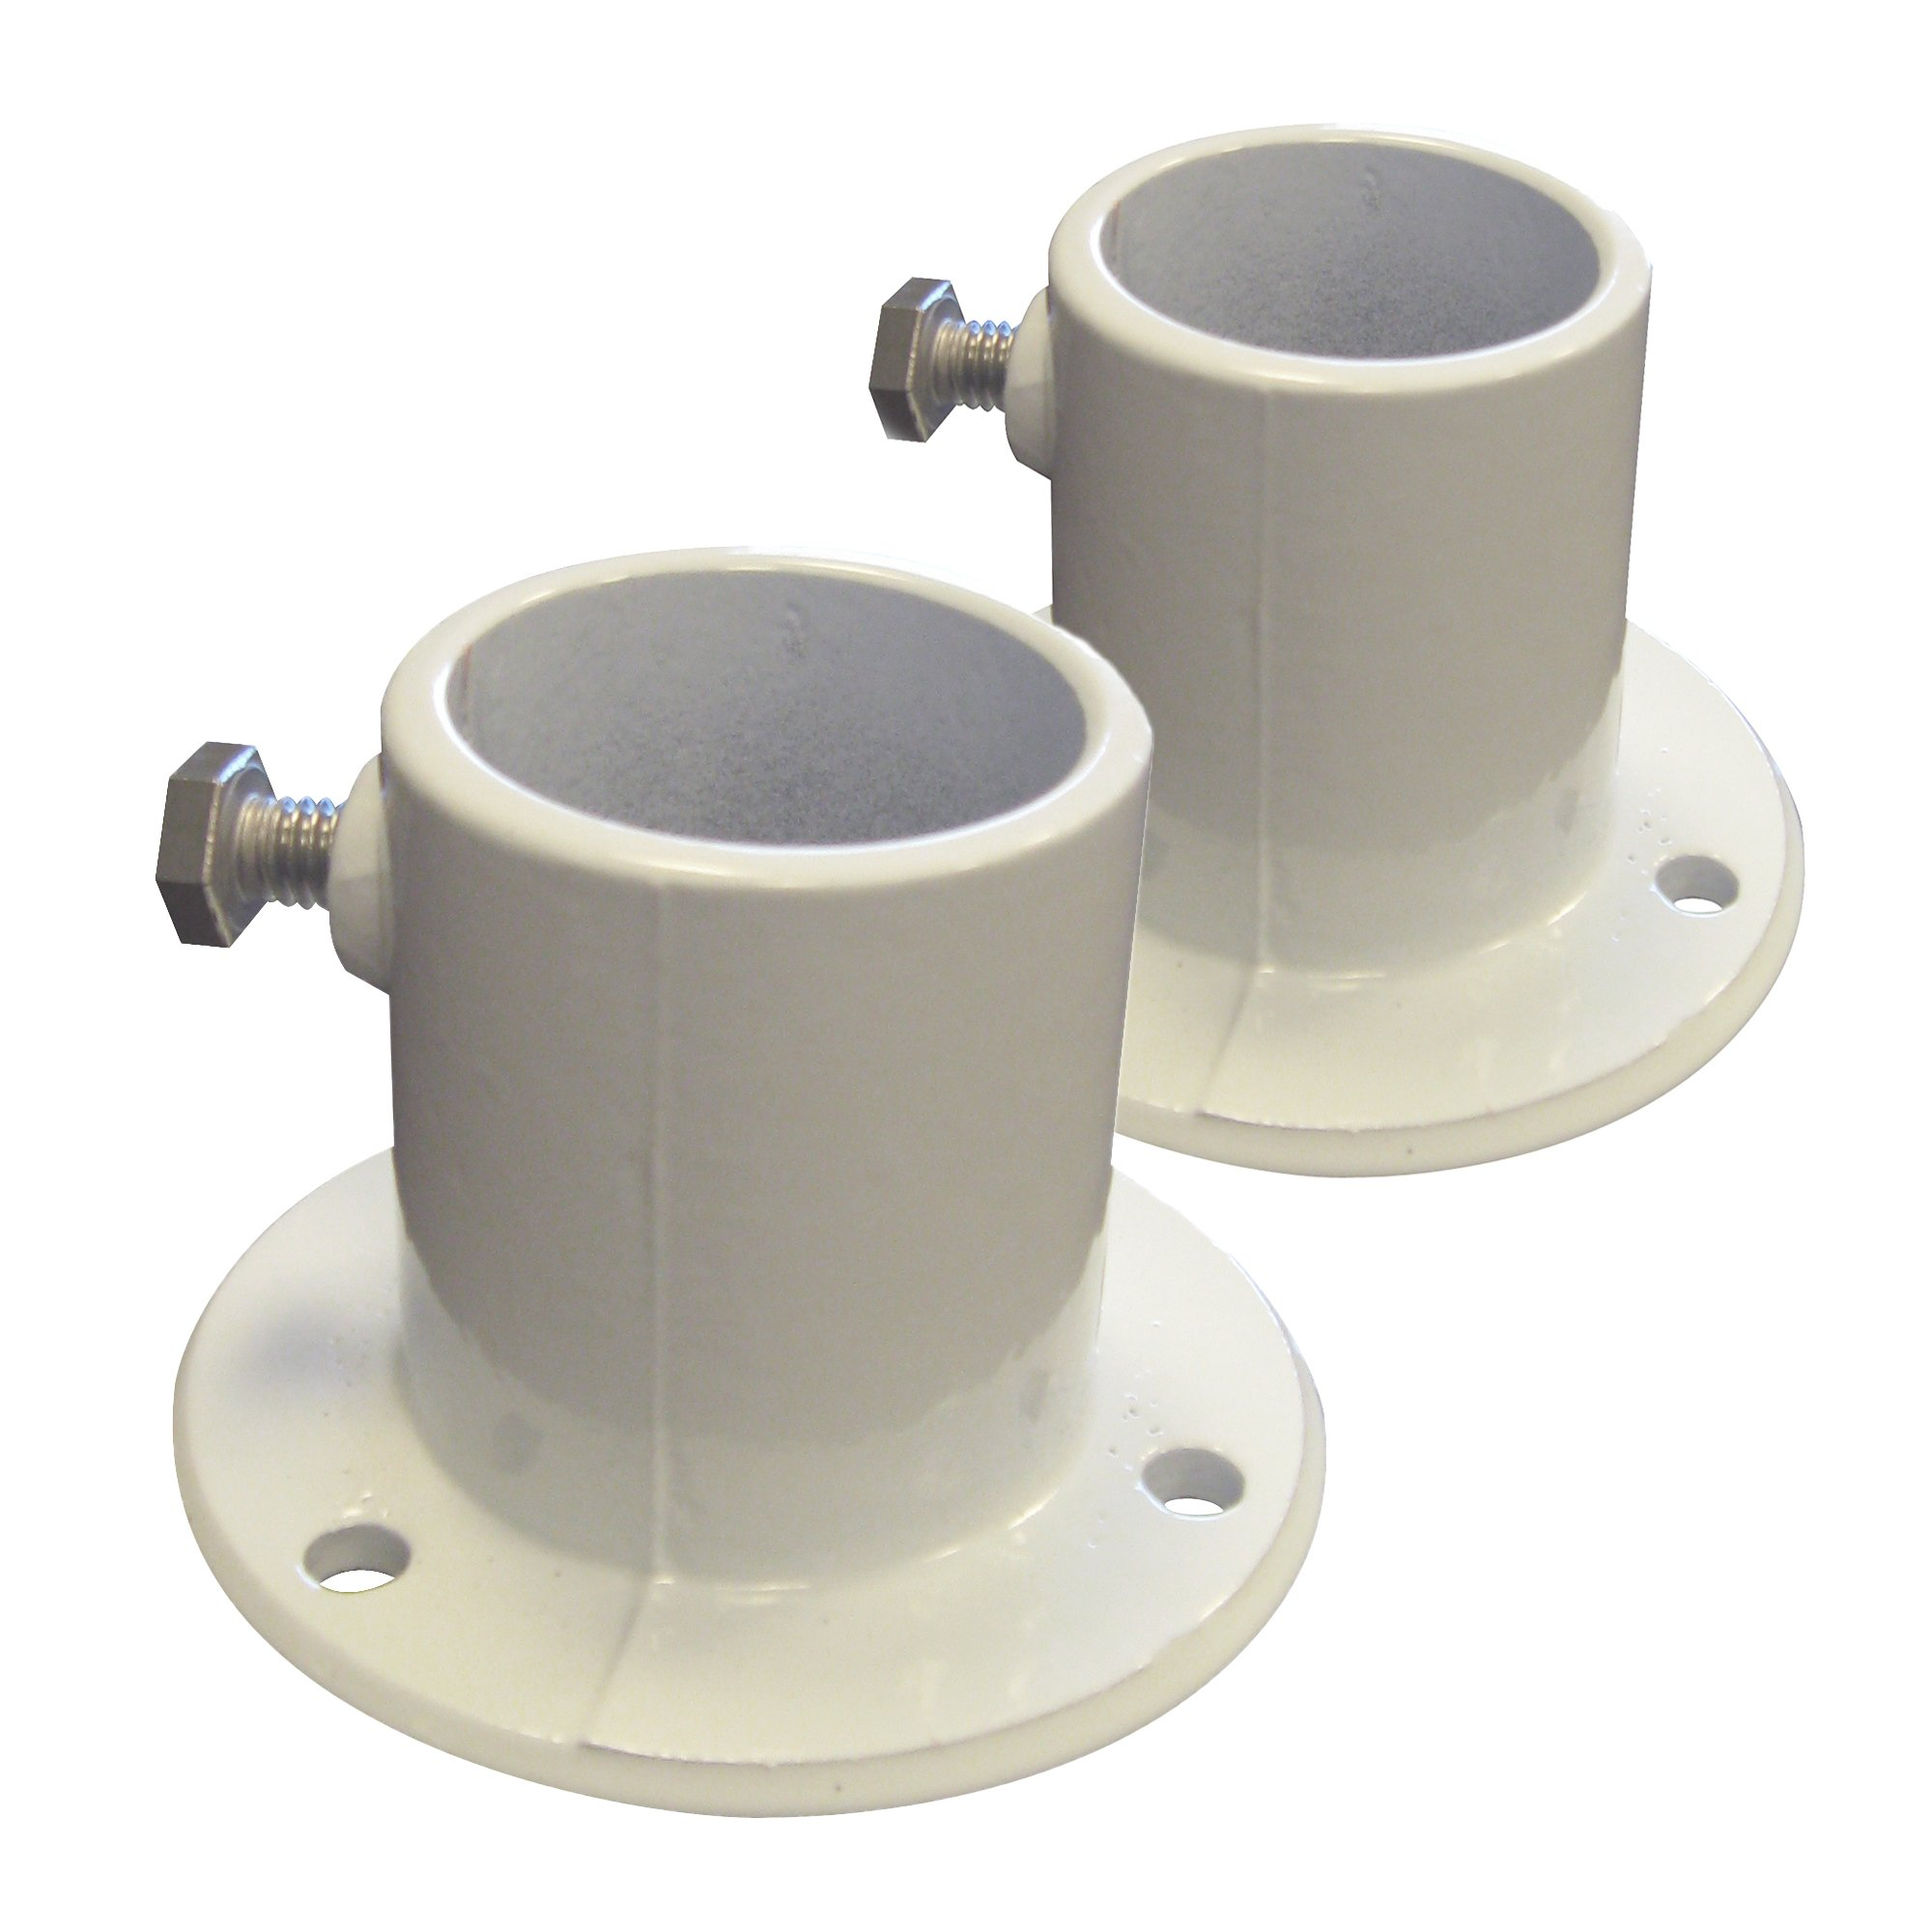 Blue Wave NE1228PR Aluminum Deck Flanges for Above Ground Pool Ladder, Pair by Blue Wave